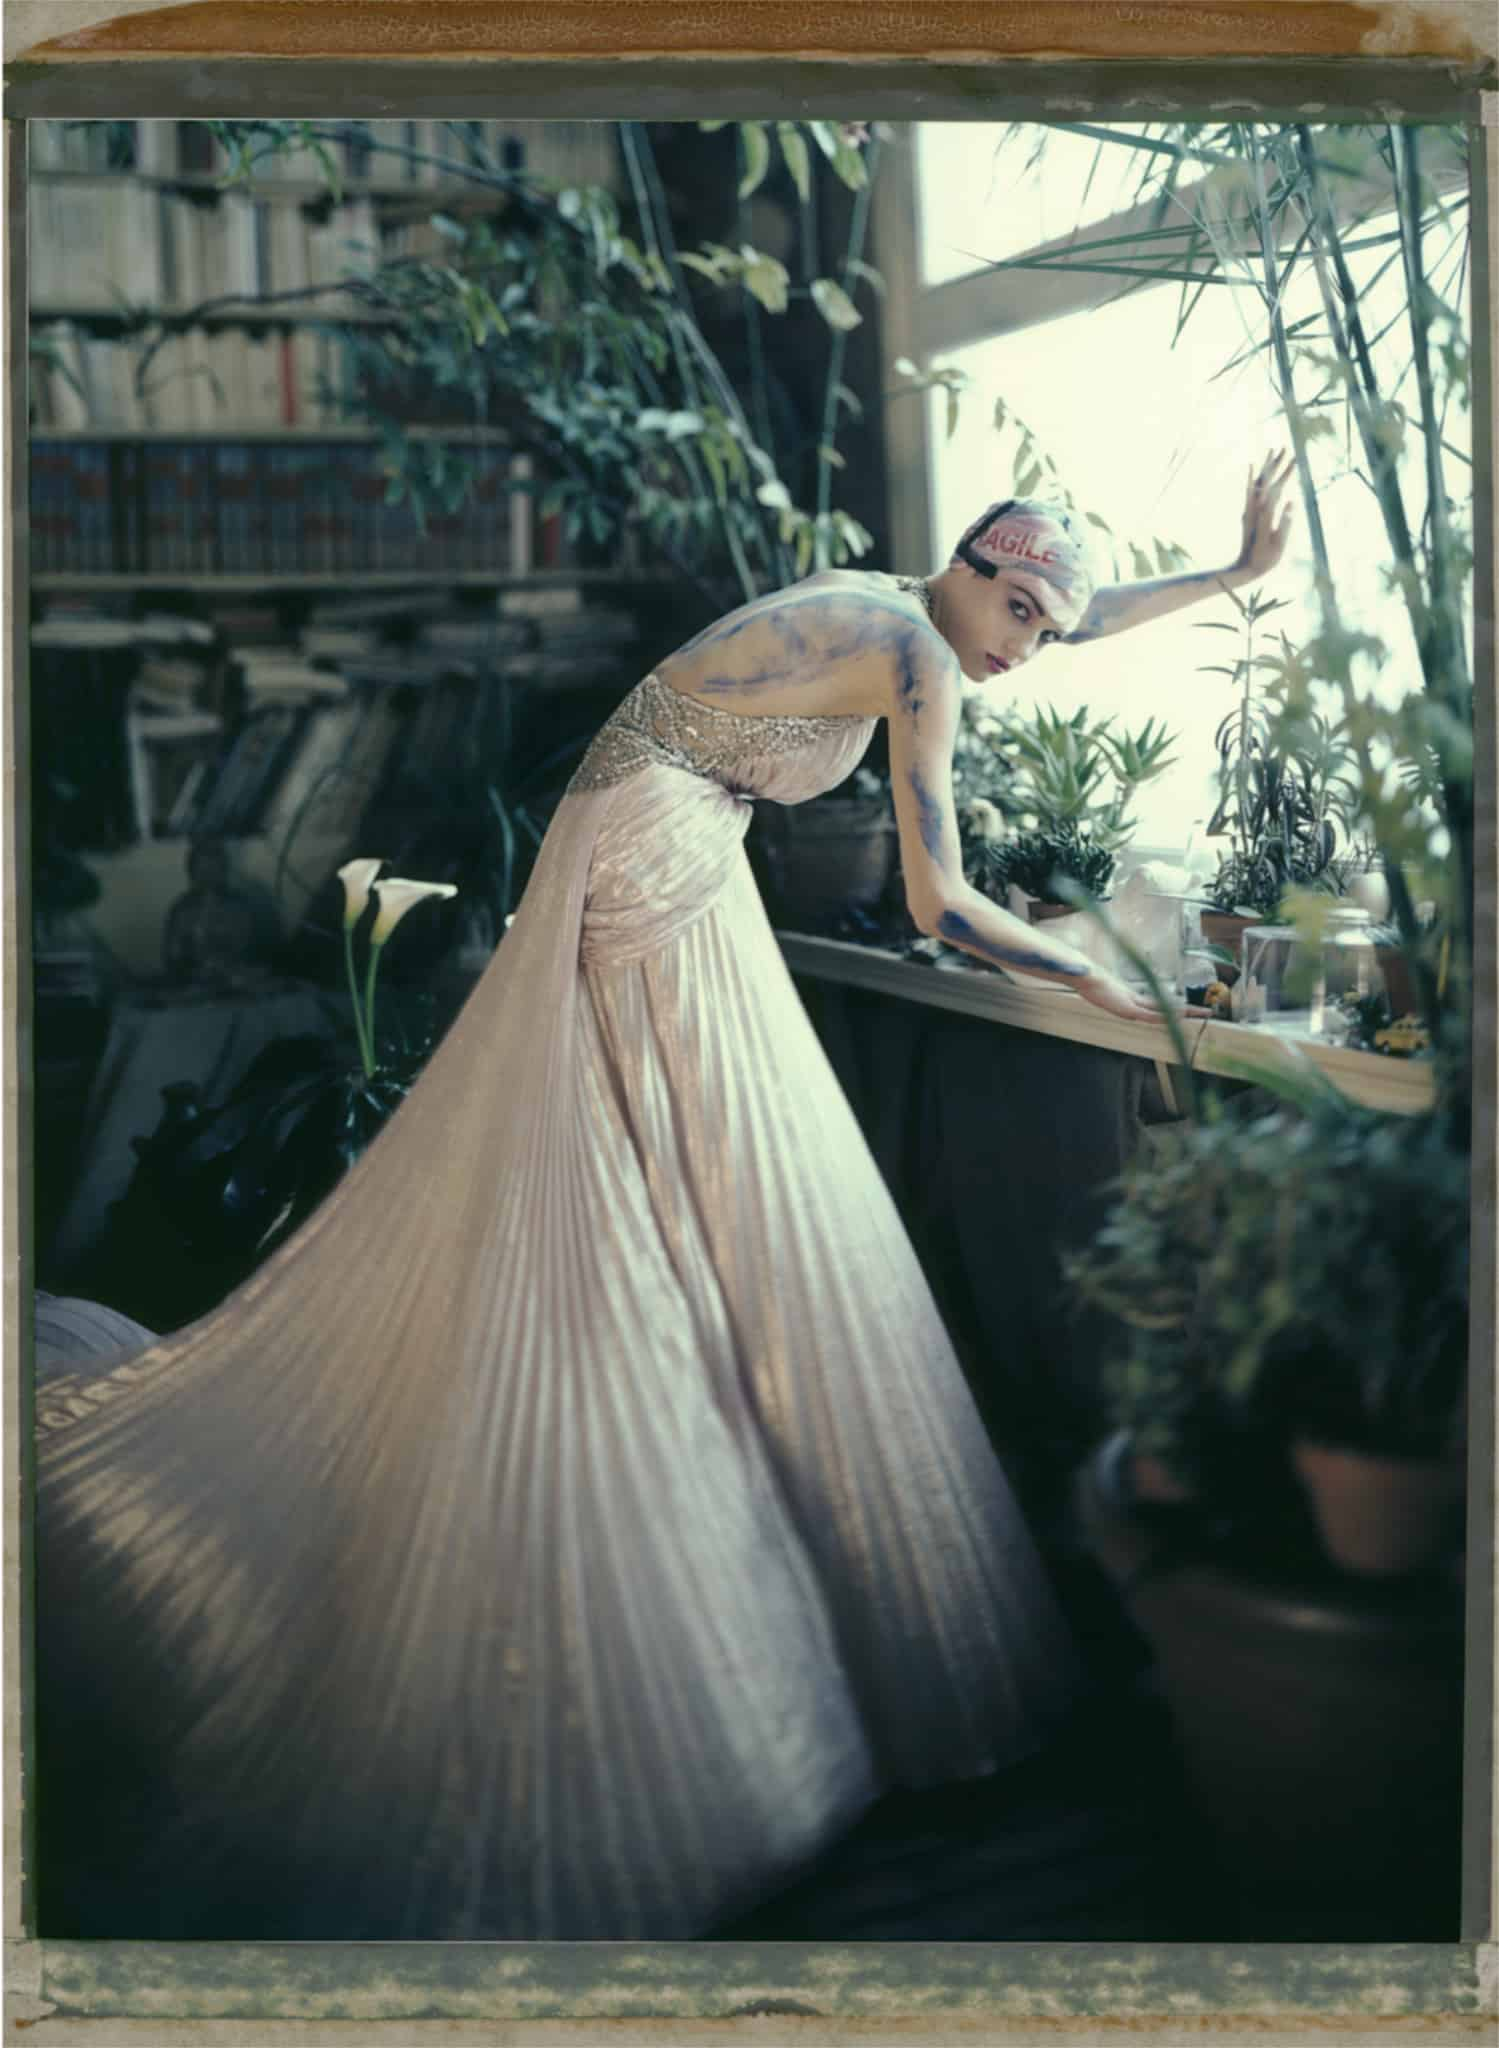 Fine art color photography of a fashion model wearing haute couture by Elie Saab, photography at a painter's studio, Montmartre, Paris.